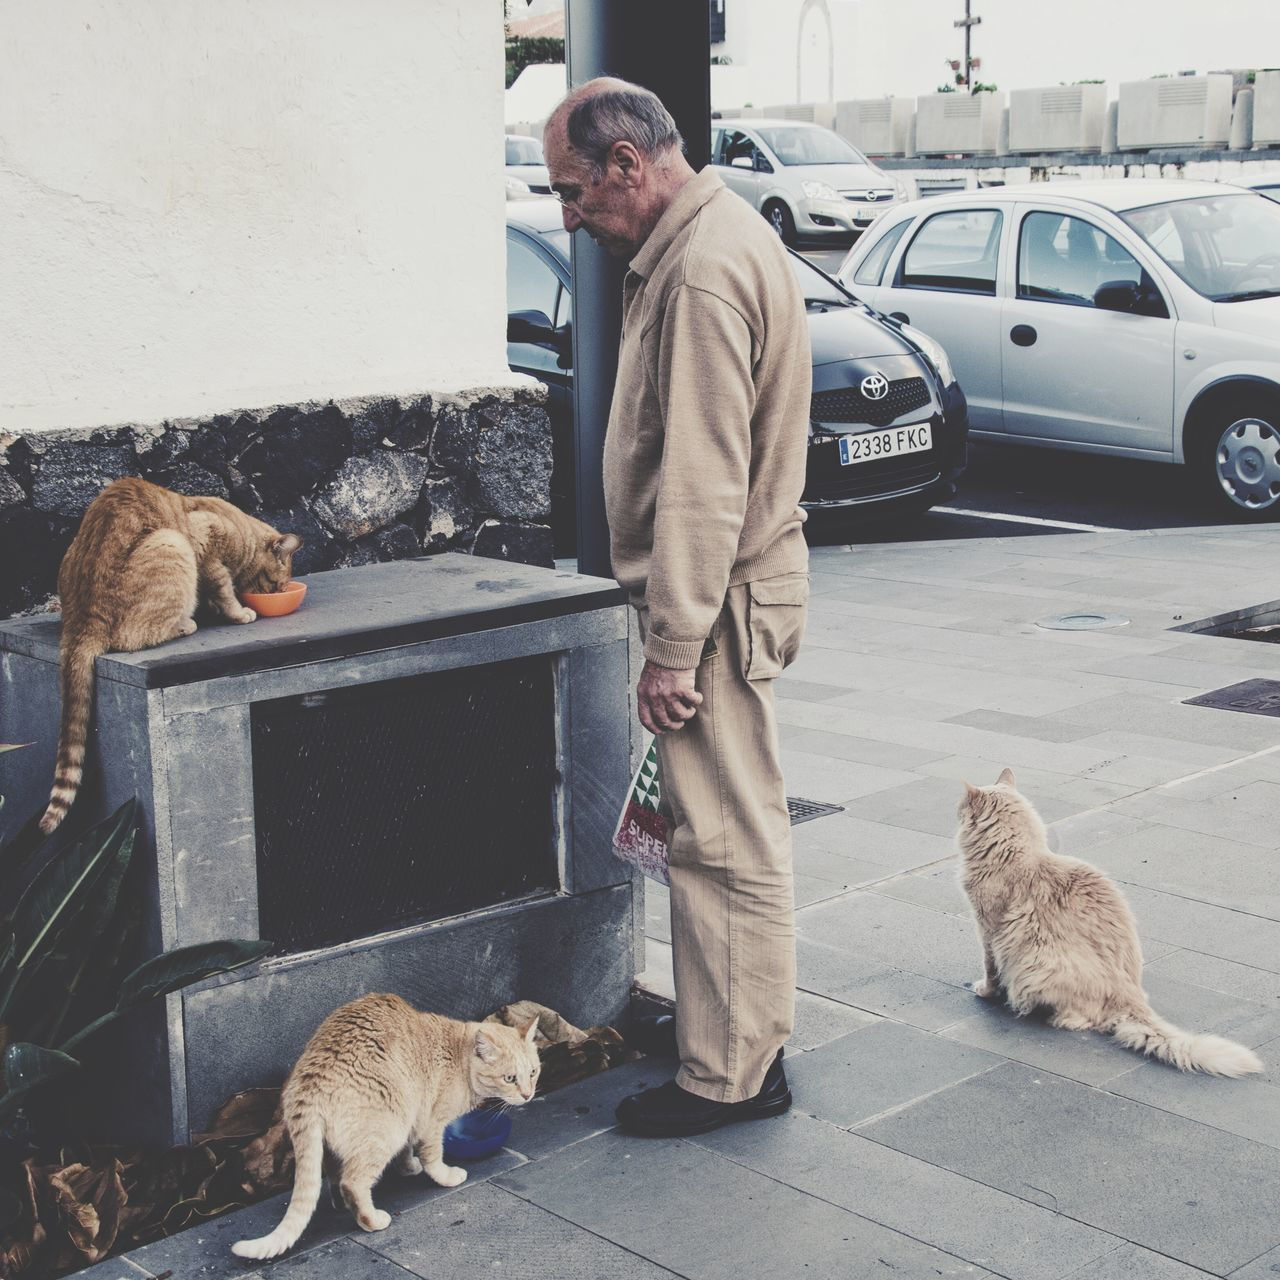 Showcase: January The Gang Beige Cats Tenerife Teneriffa Streetphotography Camouflage